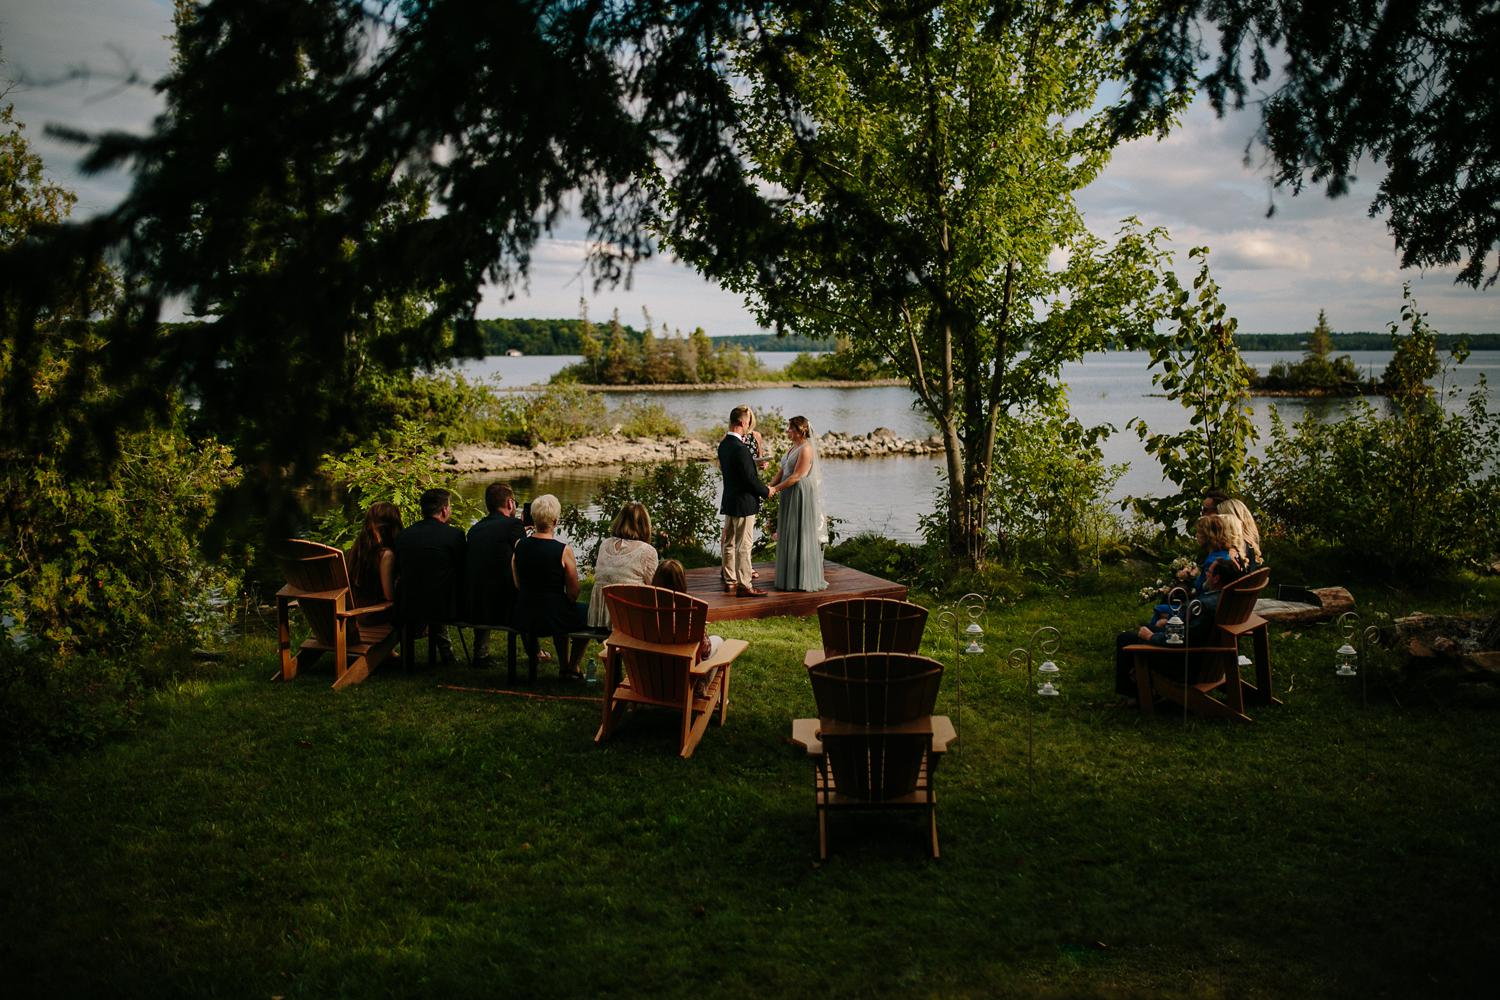 kerry ford photography - small intimate backyard rideau lake island wedding perth ontario-053.jpg